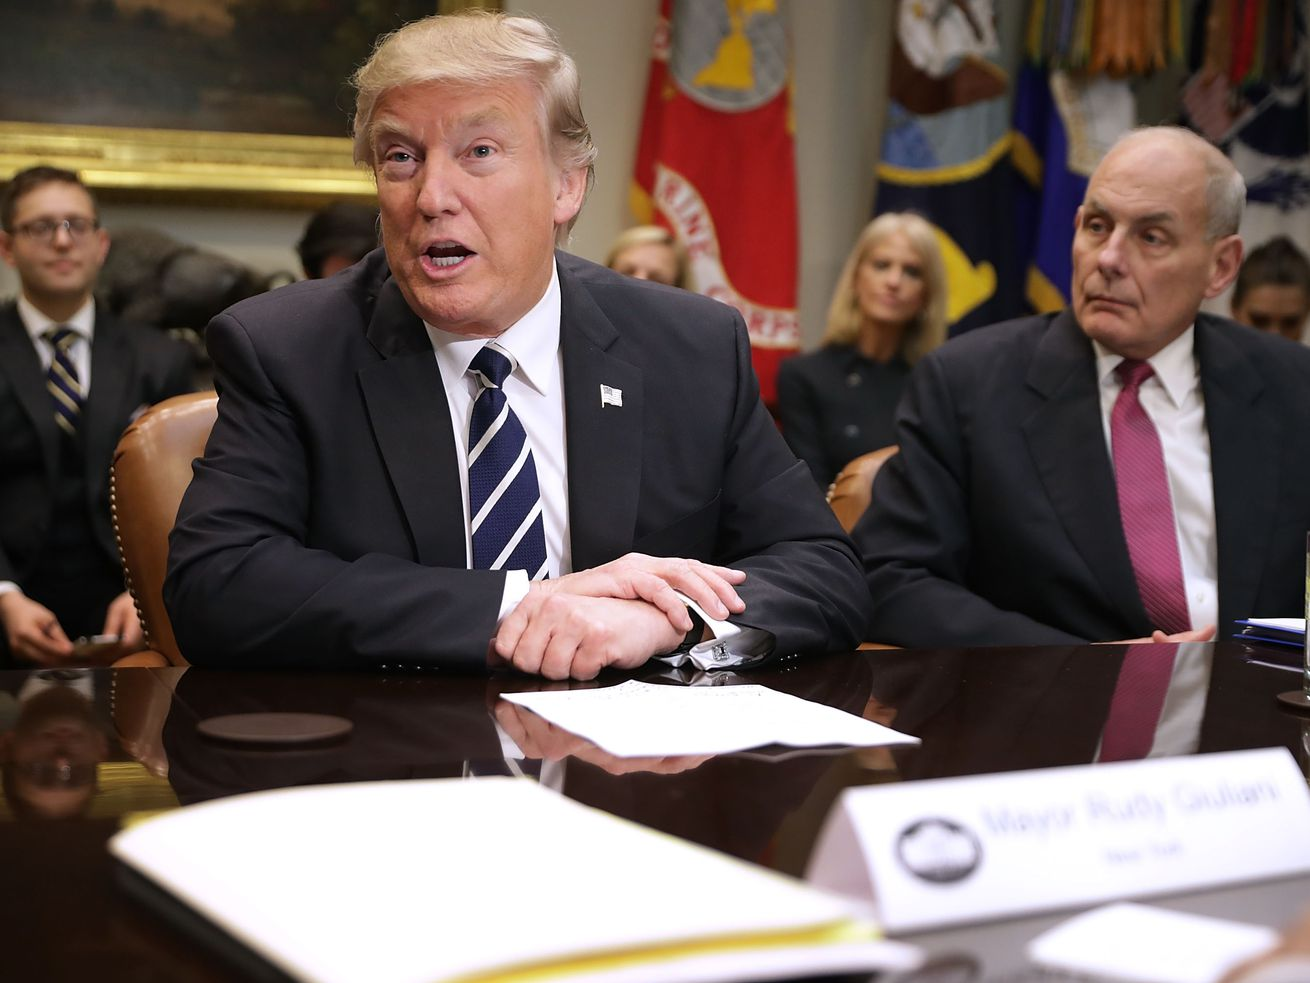 Outgoing Chief of Staff John Kelly, then homeland security secretary, sits next to President Donald Trump in a meeting in the White House in January 2017.